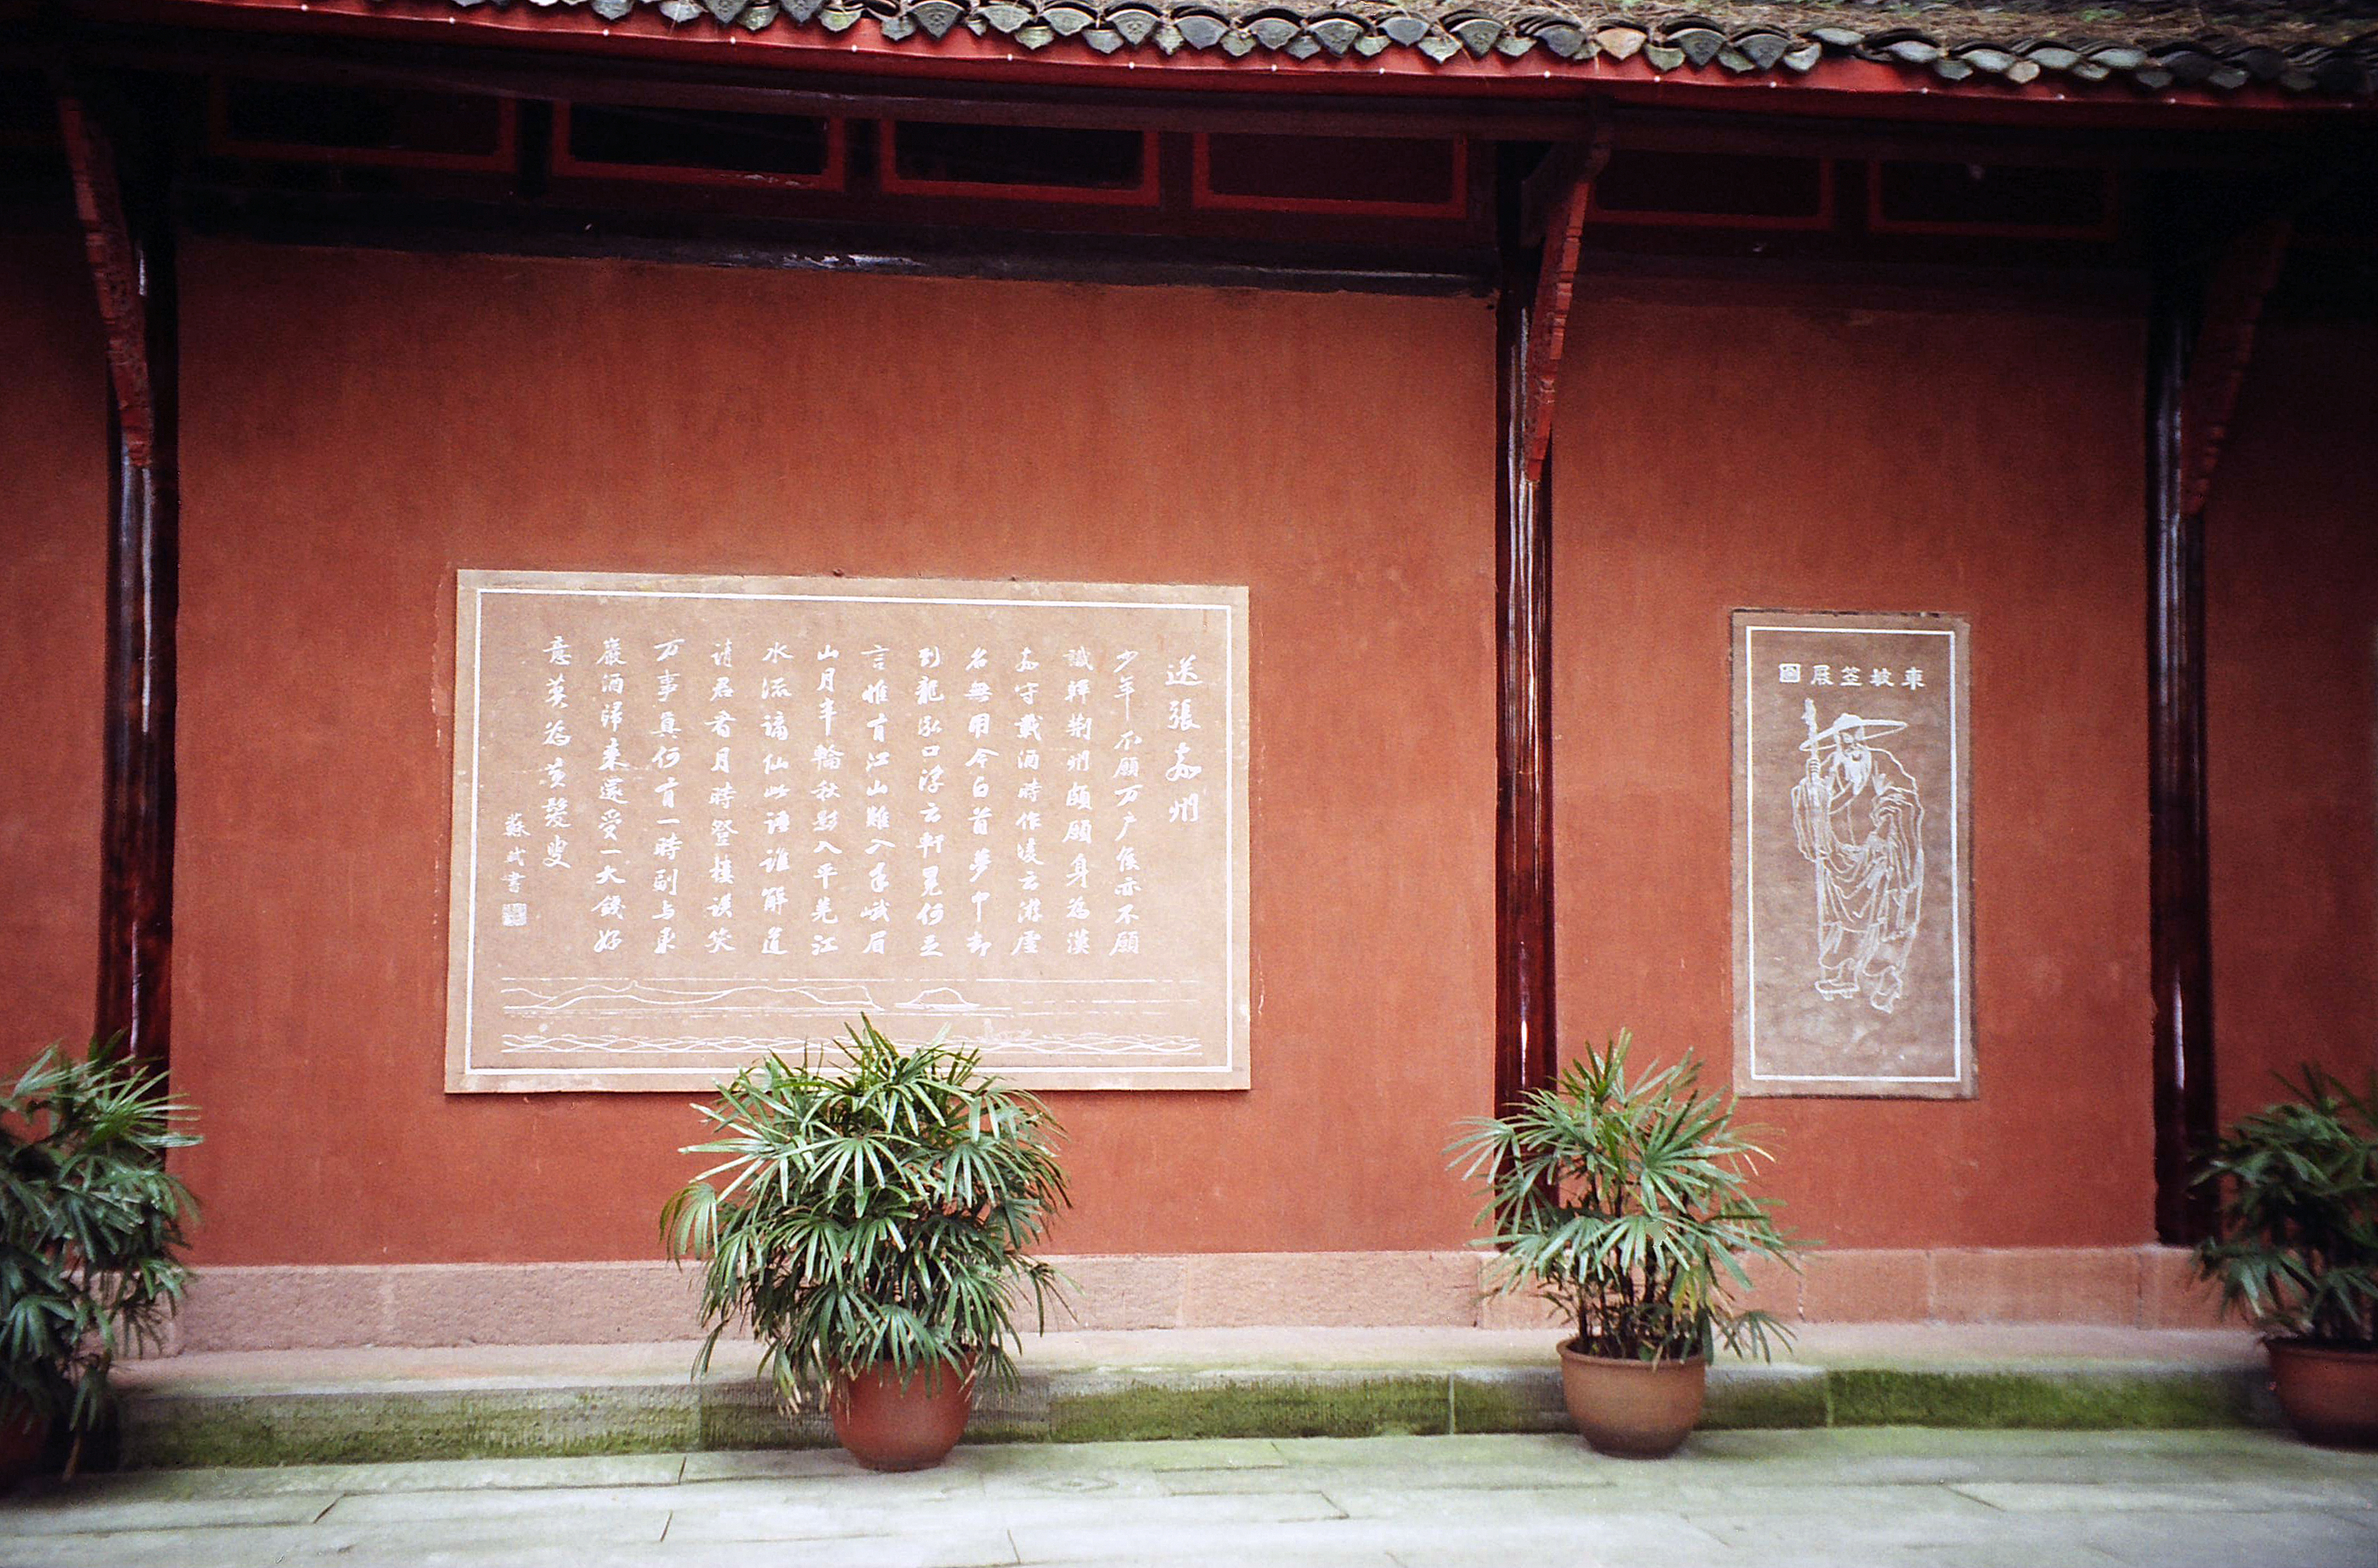 calligraphy, Leshan China 1.jpg